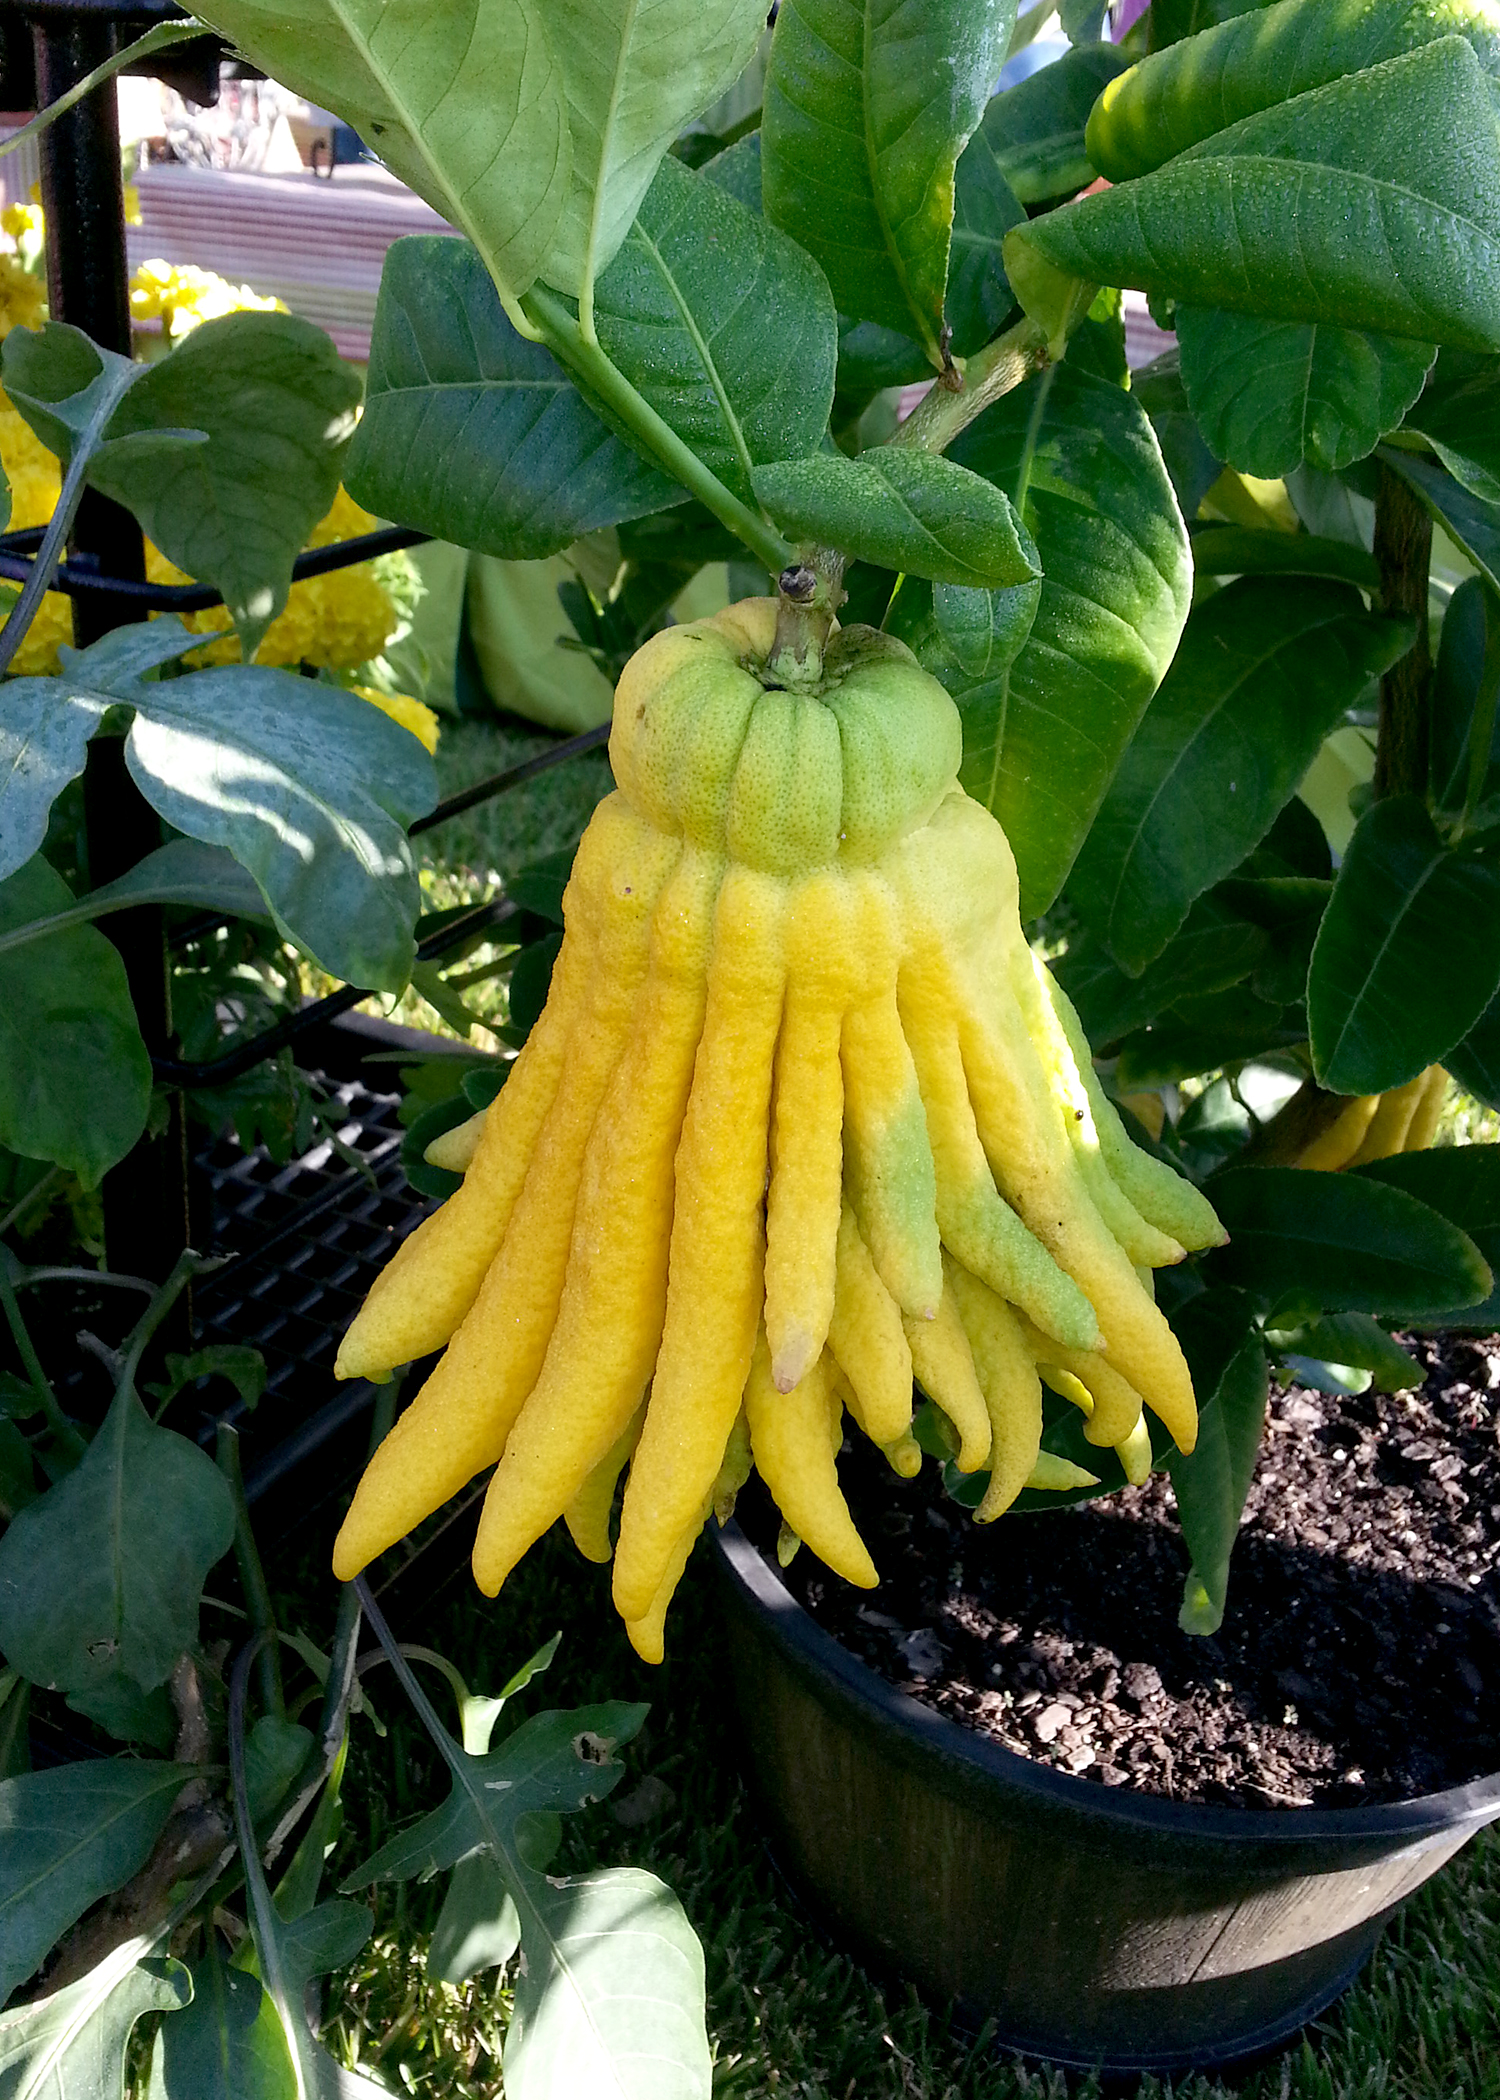 Buddha Hand is a strange-looking citrus that is used as zest for flavoring or as the strange, candied fruit in holiday cakes. (Photo by MSU Extension/Gary Bachman)